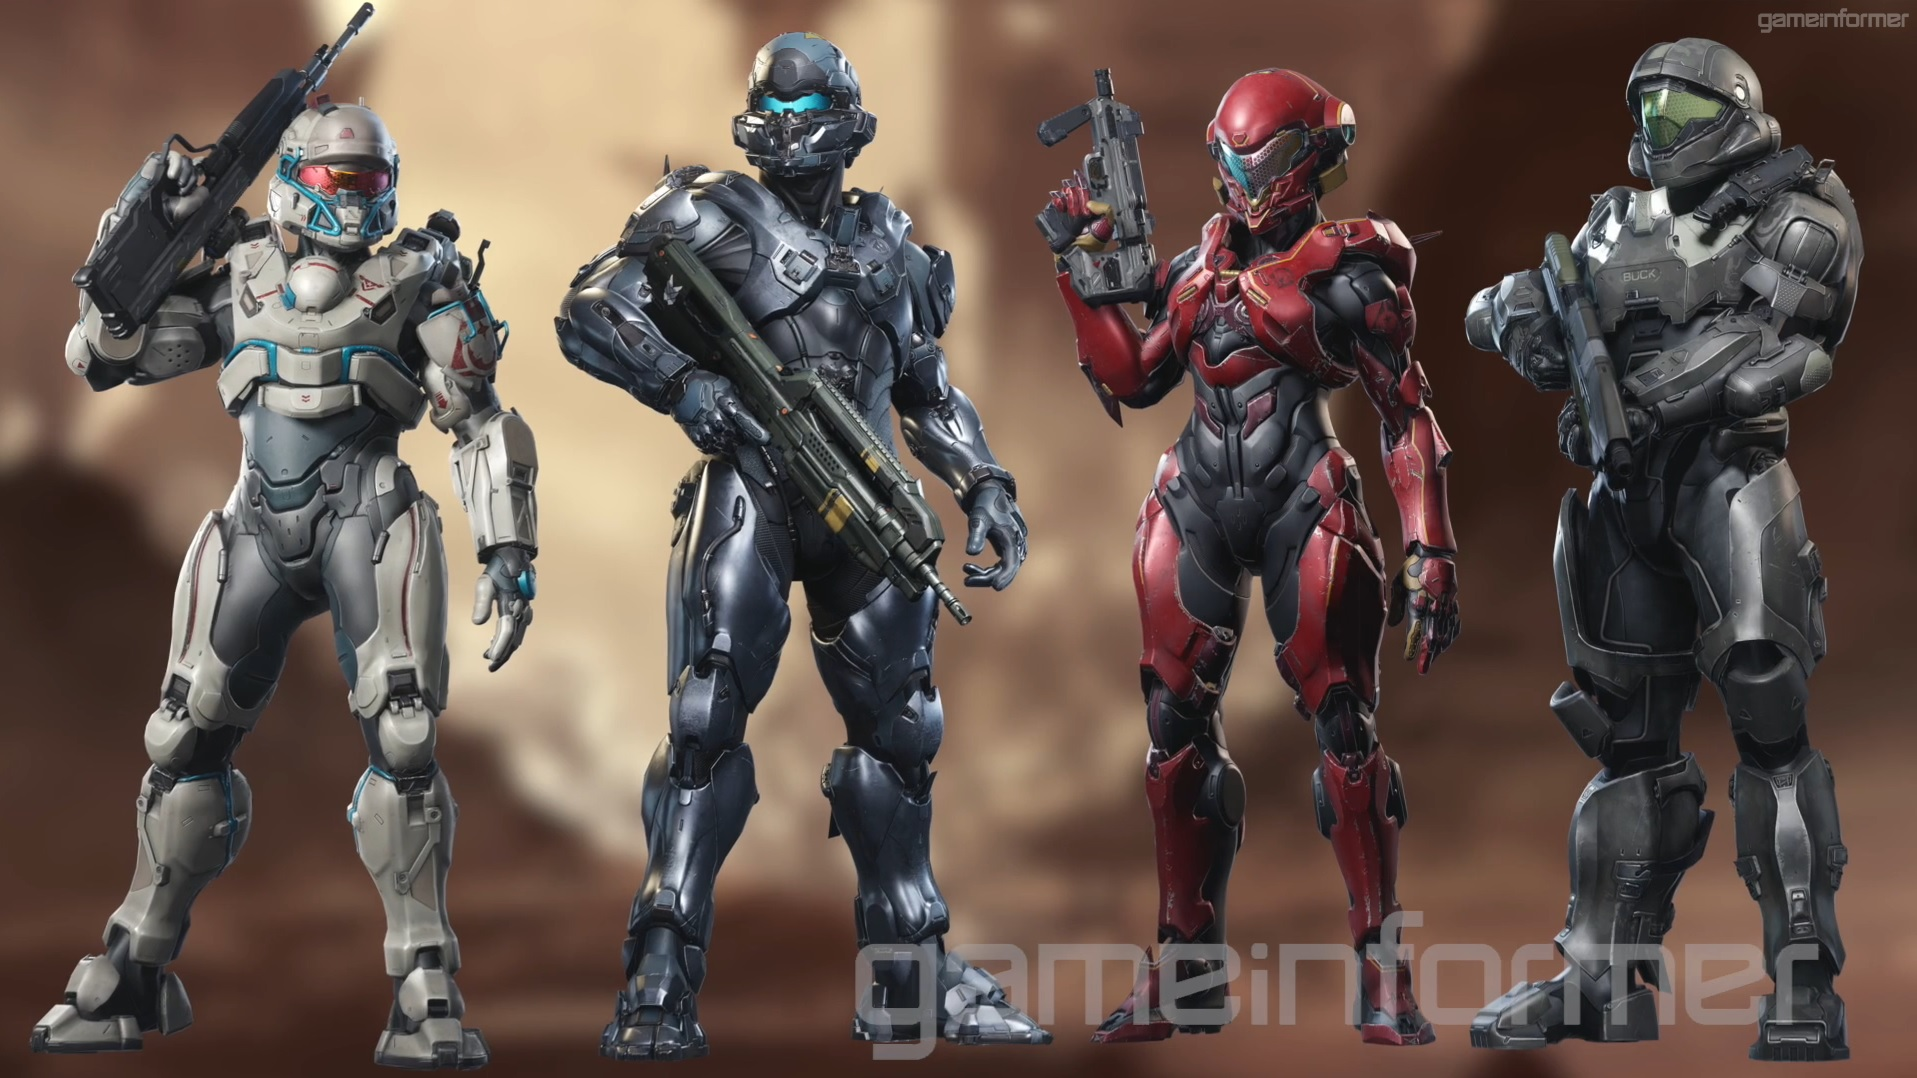 Personnages de Halo 5: Guardians (Characters/Héros/Didacte/Lasky/Palmer/Dr Halsey/Anderson/S179/S104/S043/Majestic Squad/Marines/Spartan 4/Linda 058/Kelly/Johnson/Guilty Spark/Arbiter/Master Chief/Cortana/Forerunner/UNSC/Rampacy/John 117/ODST/Spartan) Fireteam-Osiris